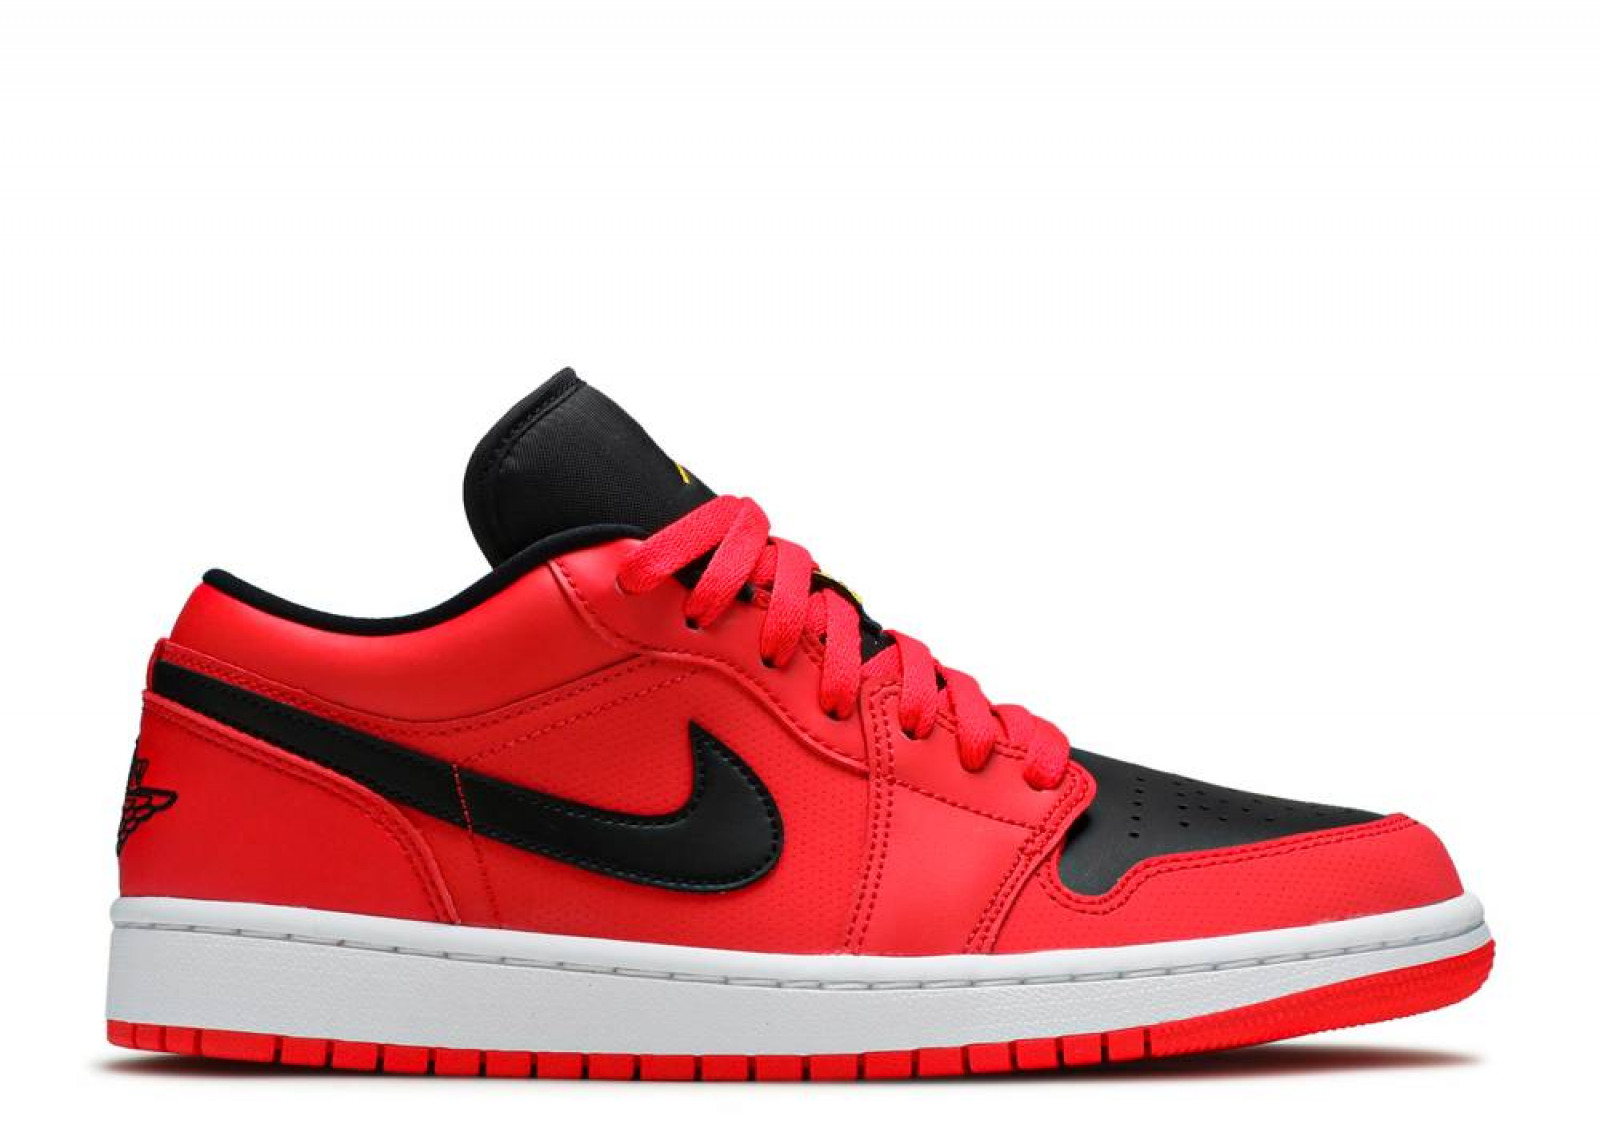 AIR JORDAN 1 LOW SIREN RED (W) image 1